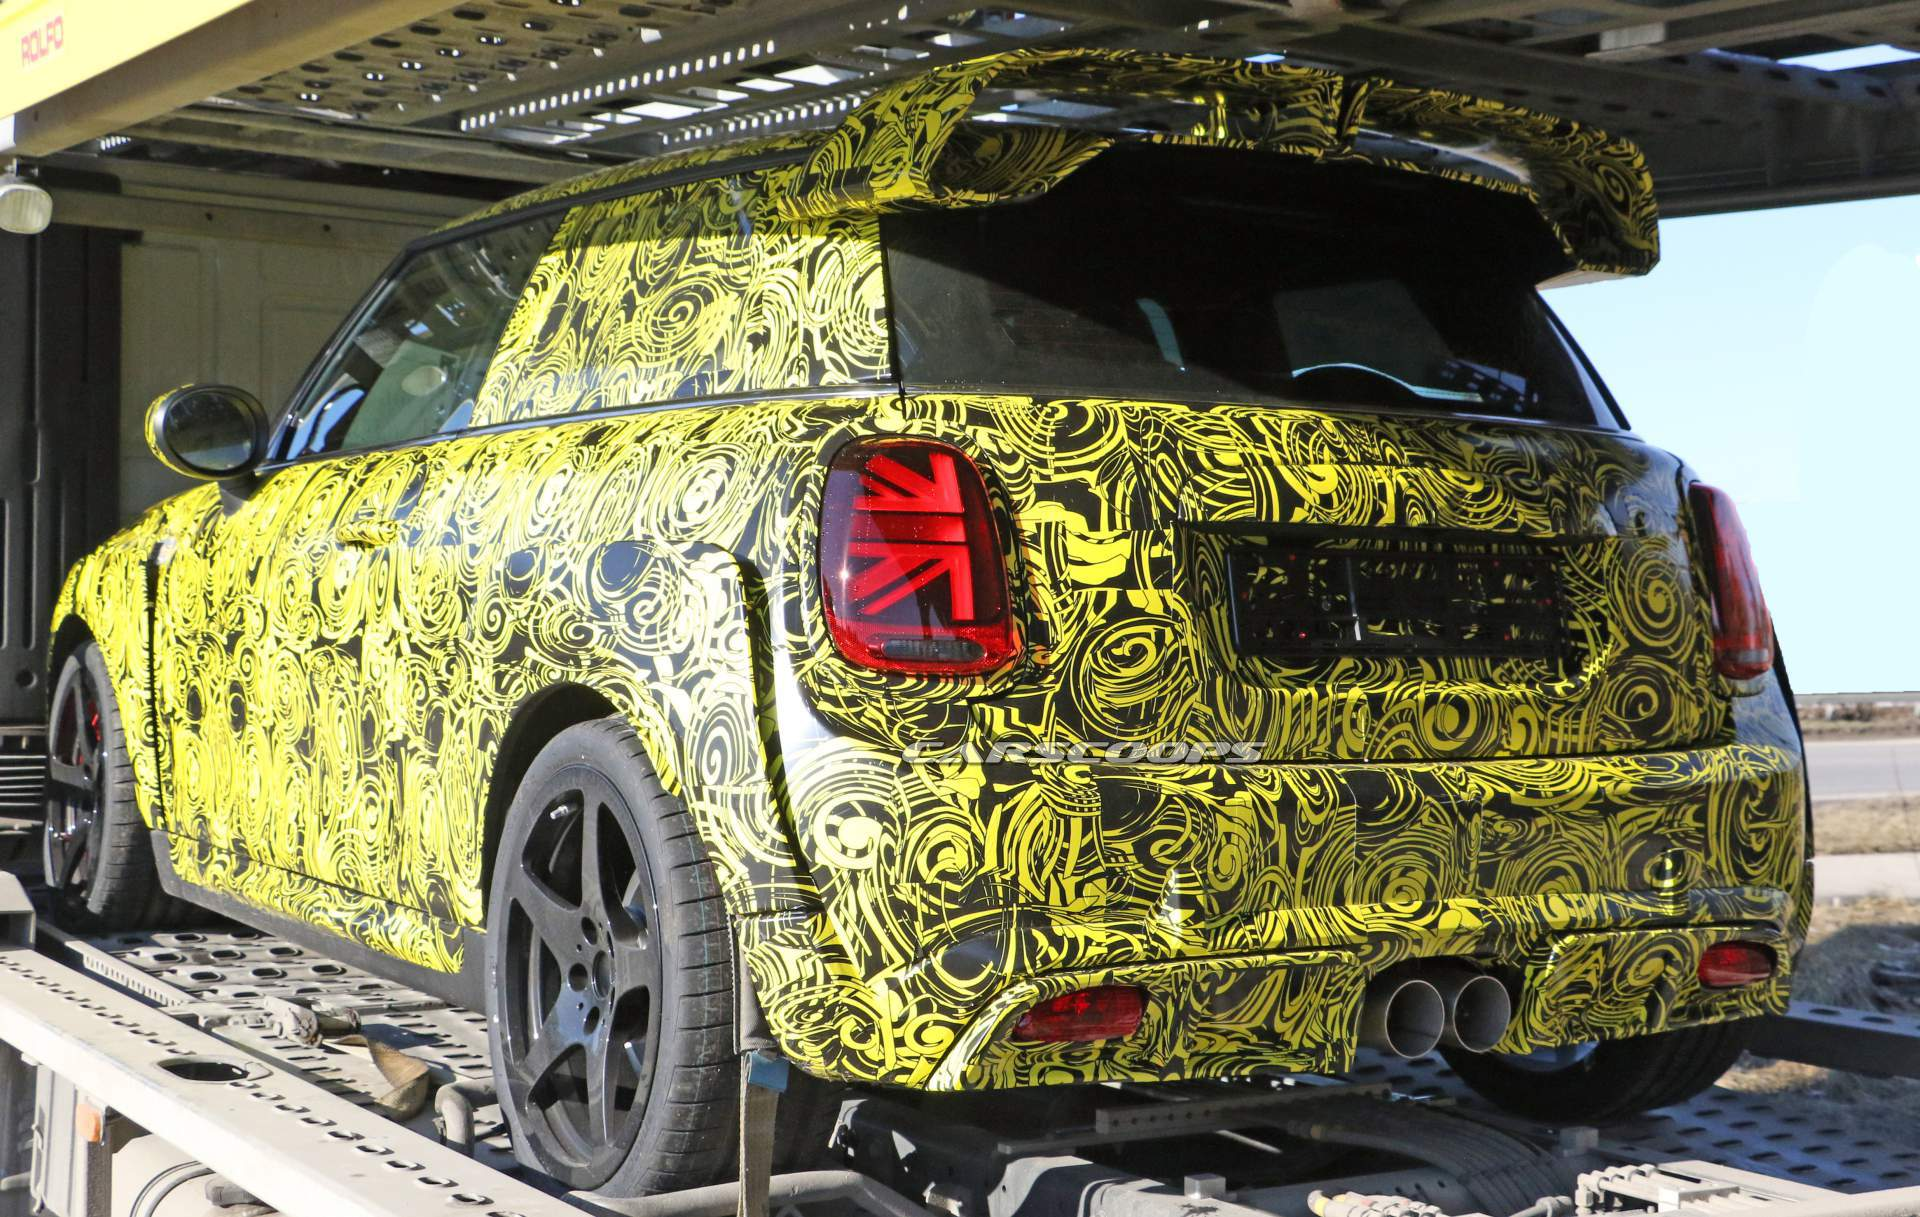 2020 Mini Jcw Gp Shows Wild Production Bodykit For The First Time